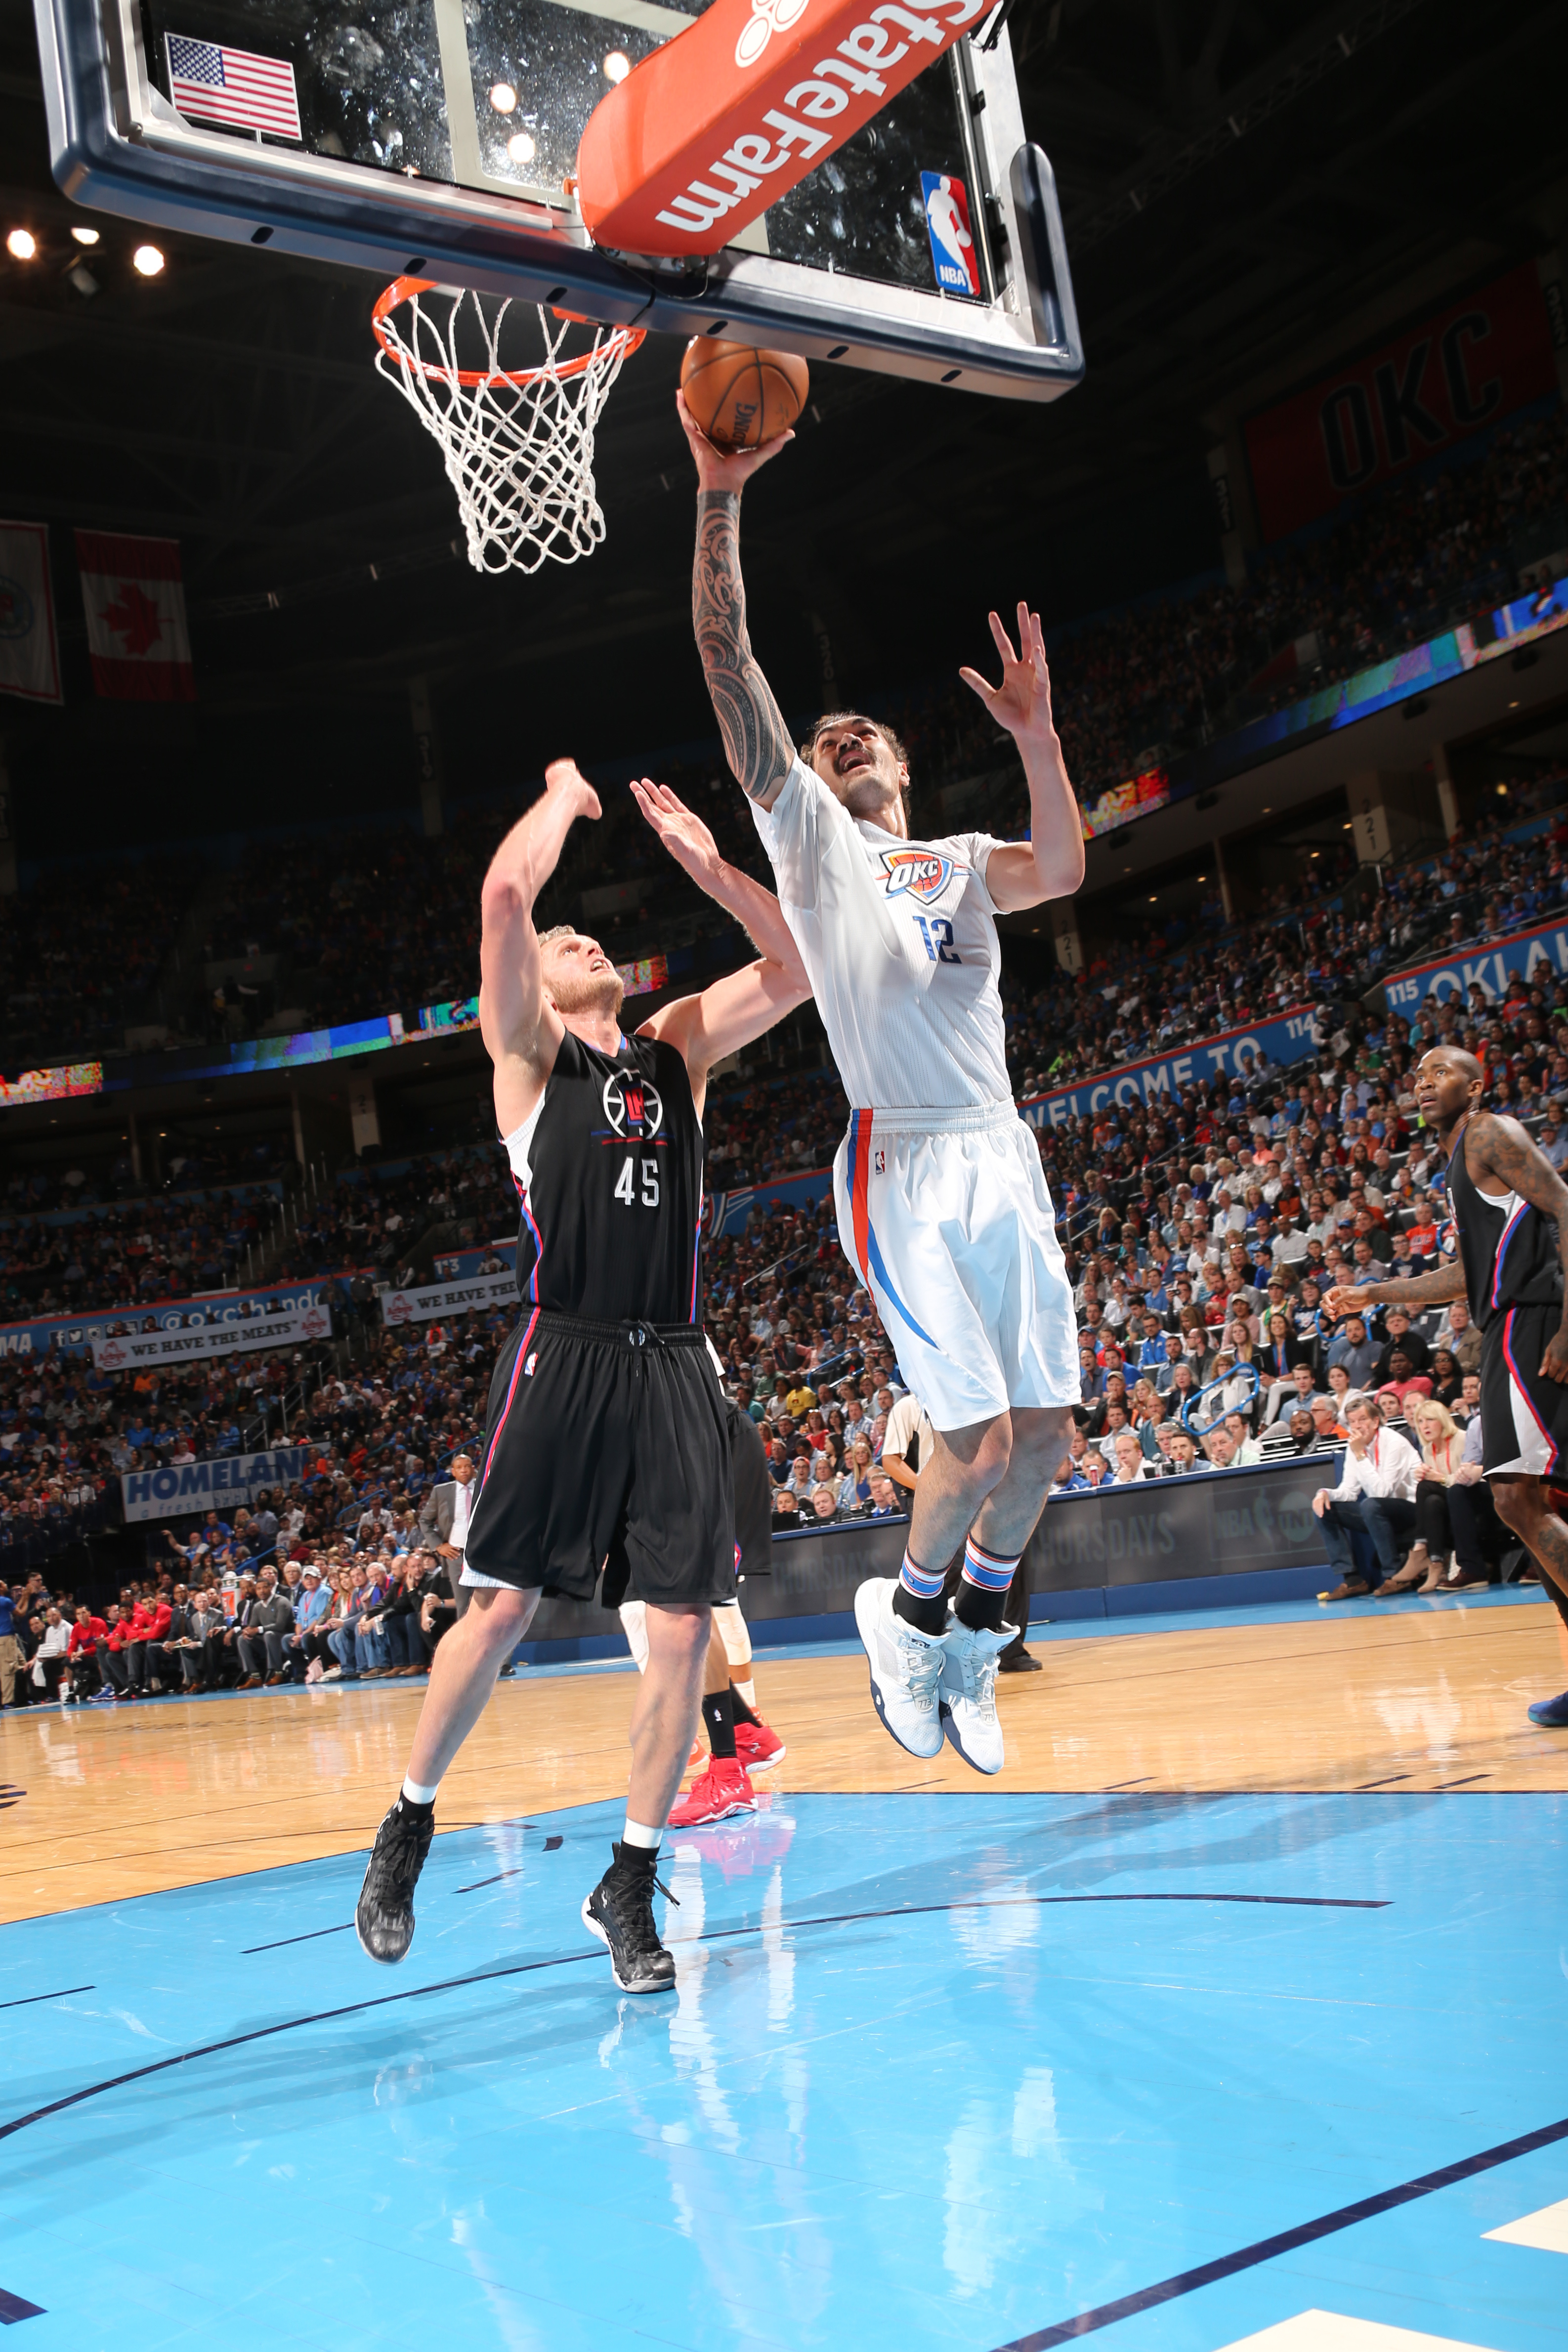 OKLAHOMA CITY, OK - MARCH 31:  Steven Adams #12 of the Oklahoma City Thunder goes to the basket against Cole Aldrich #45 of the Los Angeles Clippers on March 31, 2016 at Chesapeake Energy Arena in Oklahoma City, Oklahoma. (Photo by Layne Murdoch/NBAE via